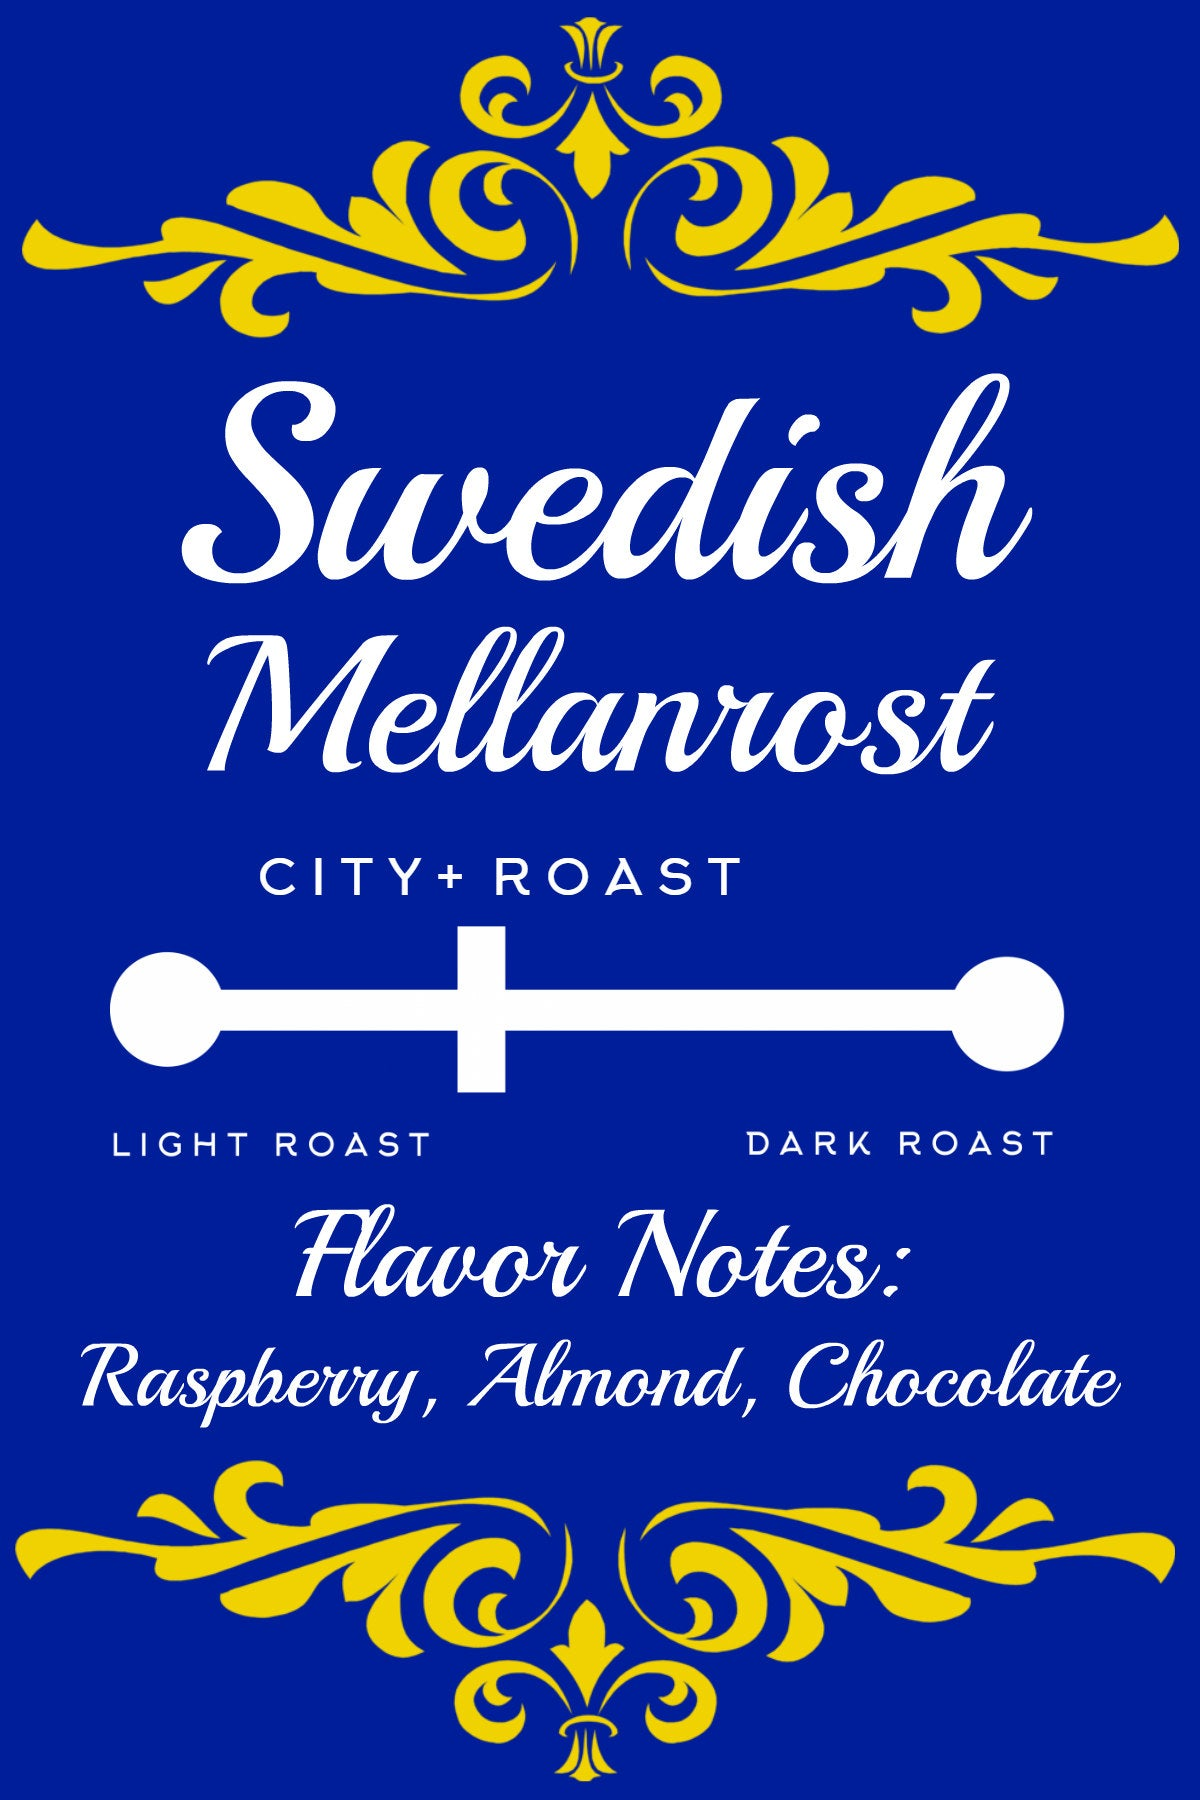 Swedish Mellanrost